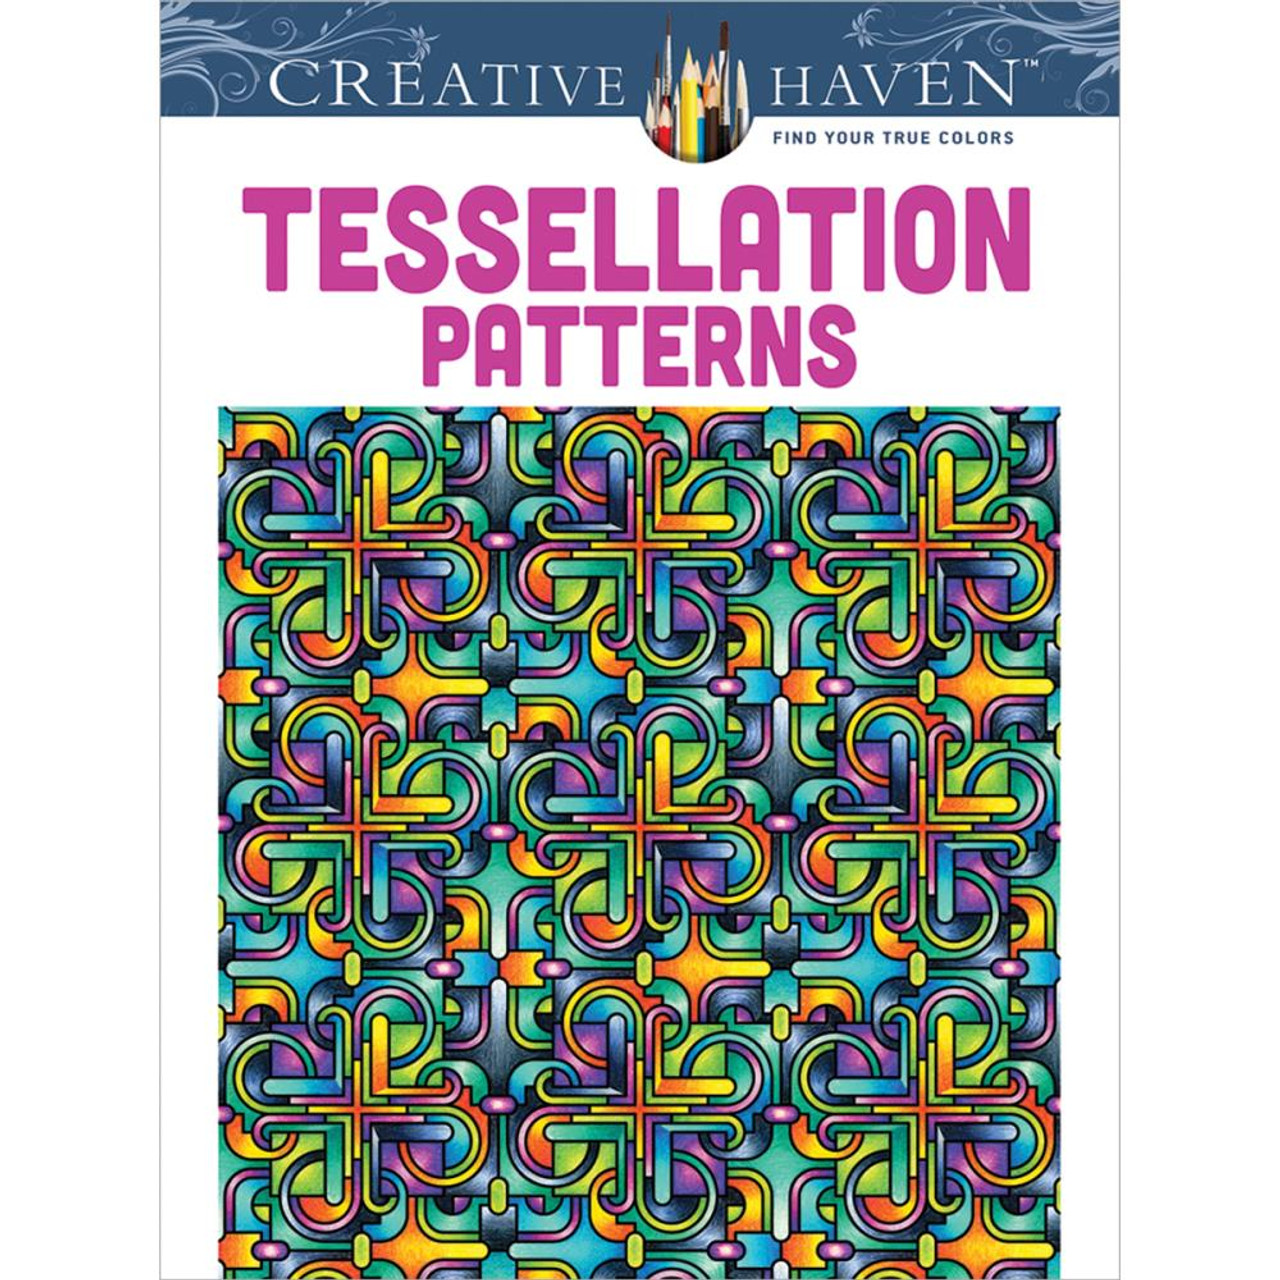 Creative Haven Coloring Book Tessellation Patterns